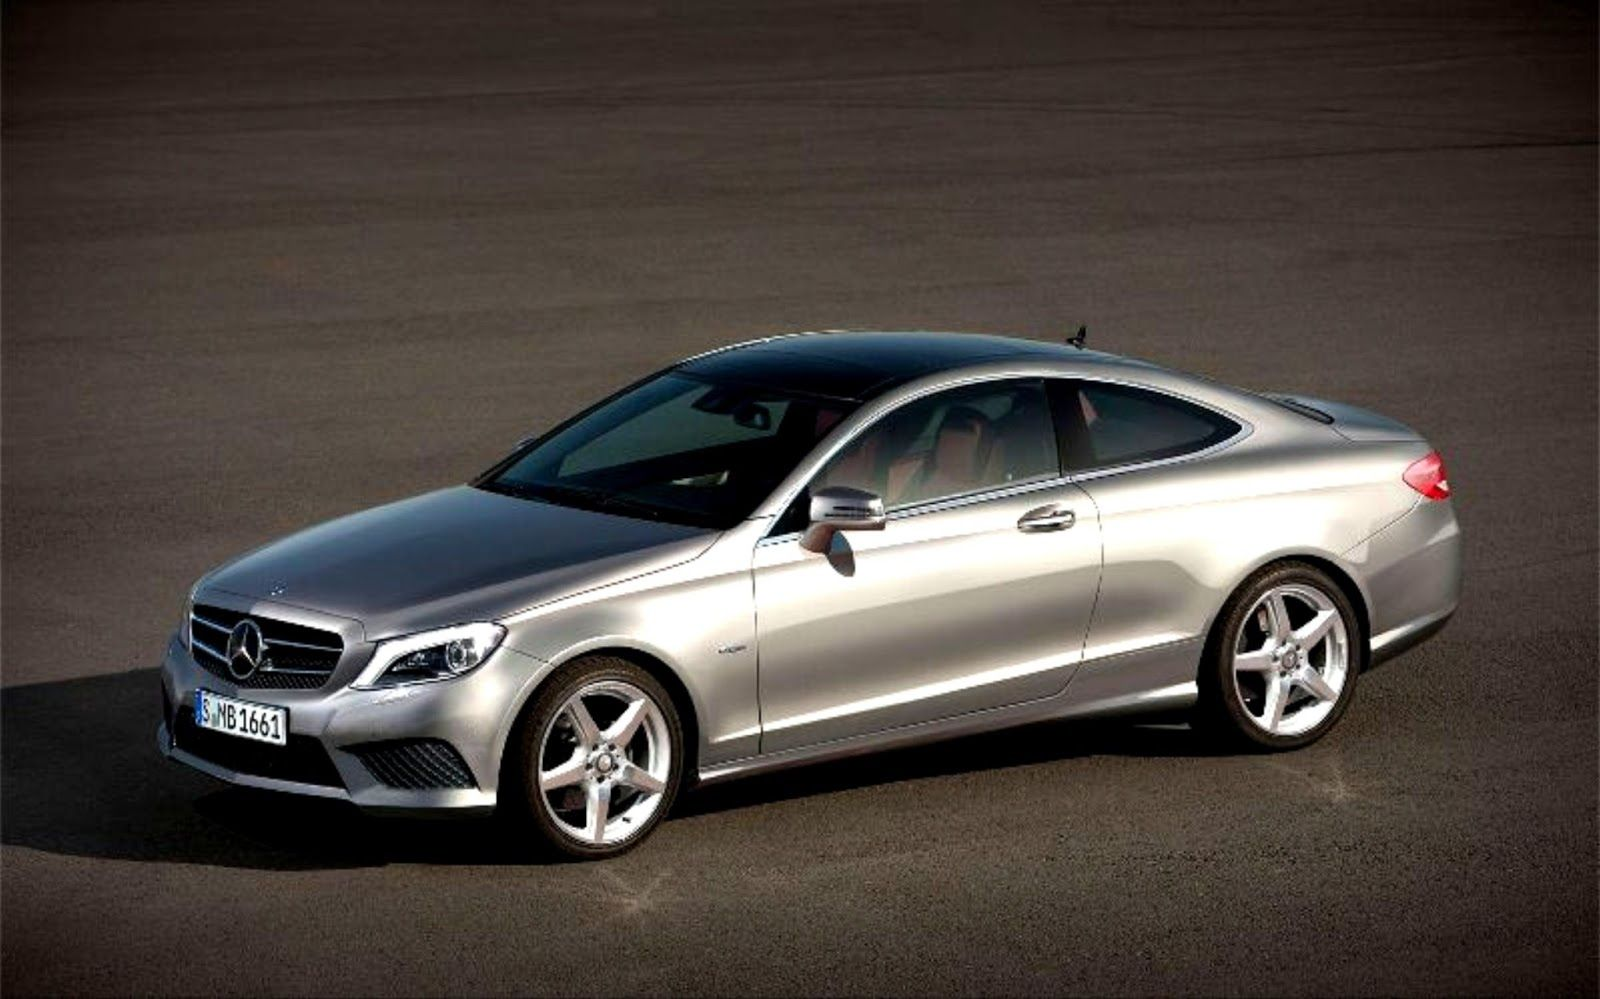 2016 mercedes benz e-class sedan best hd pictures | cars